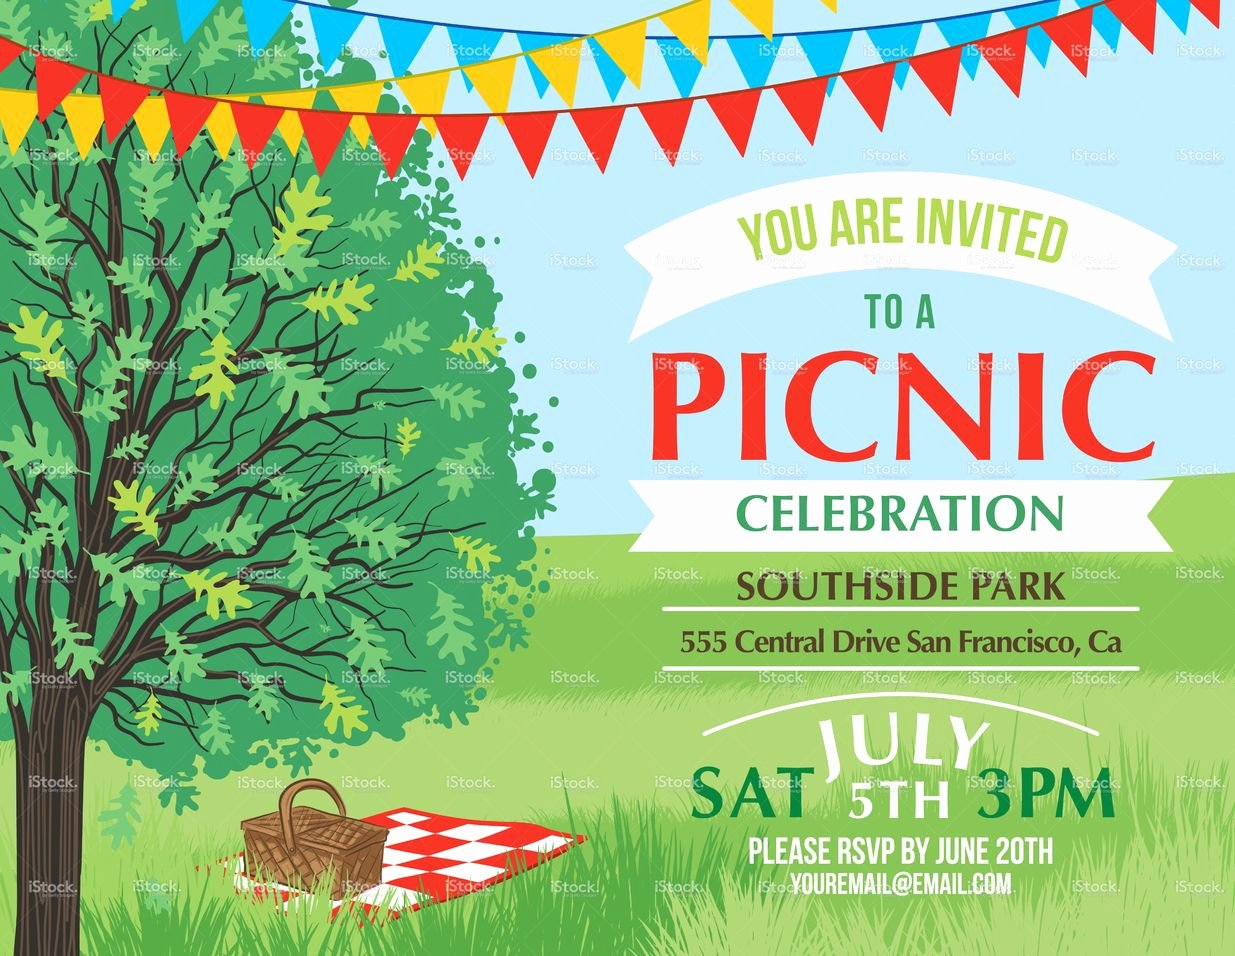 Free Picnic Flyer Template Inspirational Summer Picnic and Bbq Invitation Flyer or Template Text